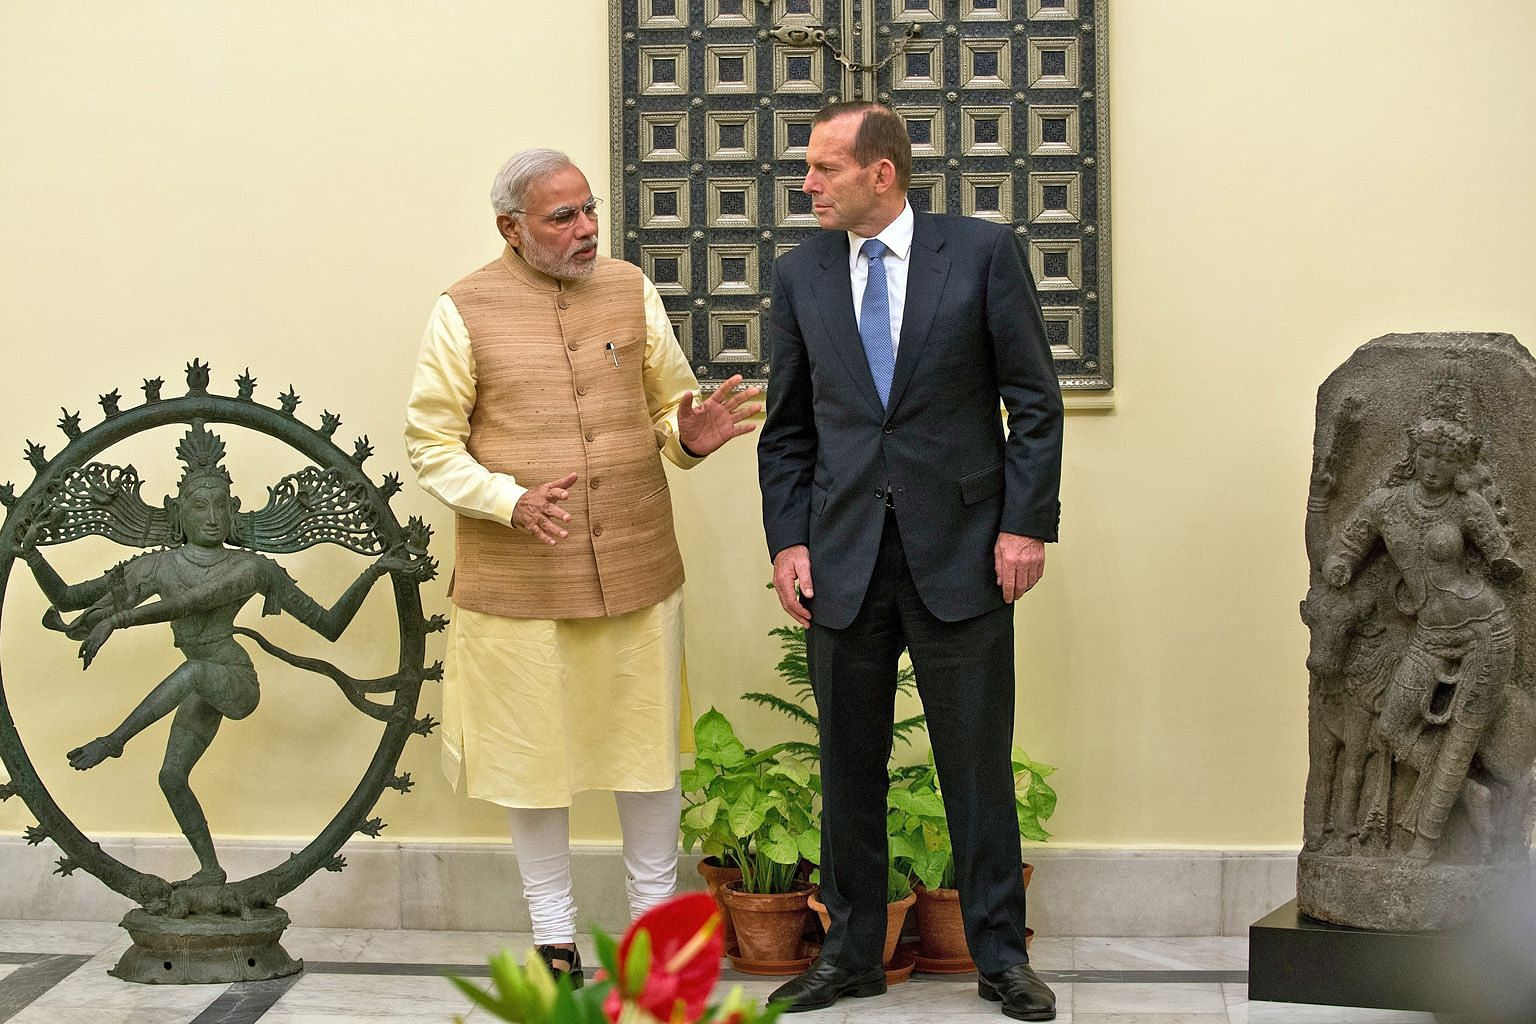 In 2014, India's Prime Minister Narendra Modi personally accepted from then Australian Prime Minister Tony Abbott an 11th-century idol of Nataraja - the Hindu god Shiva in his form as the cosmic dancer. The statue was allegedly stolen from a temple i